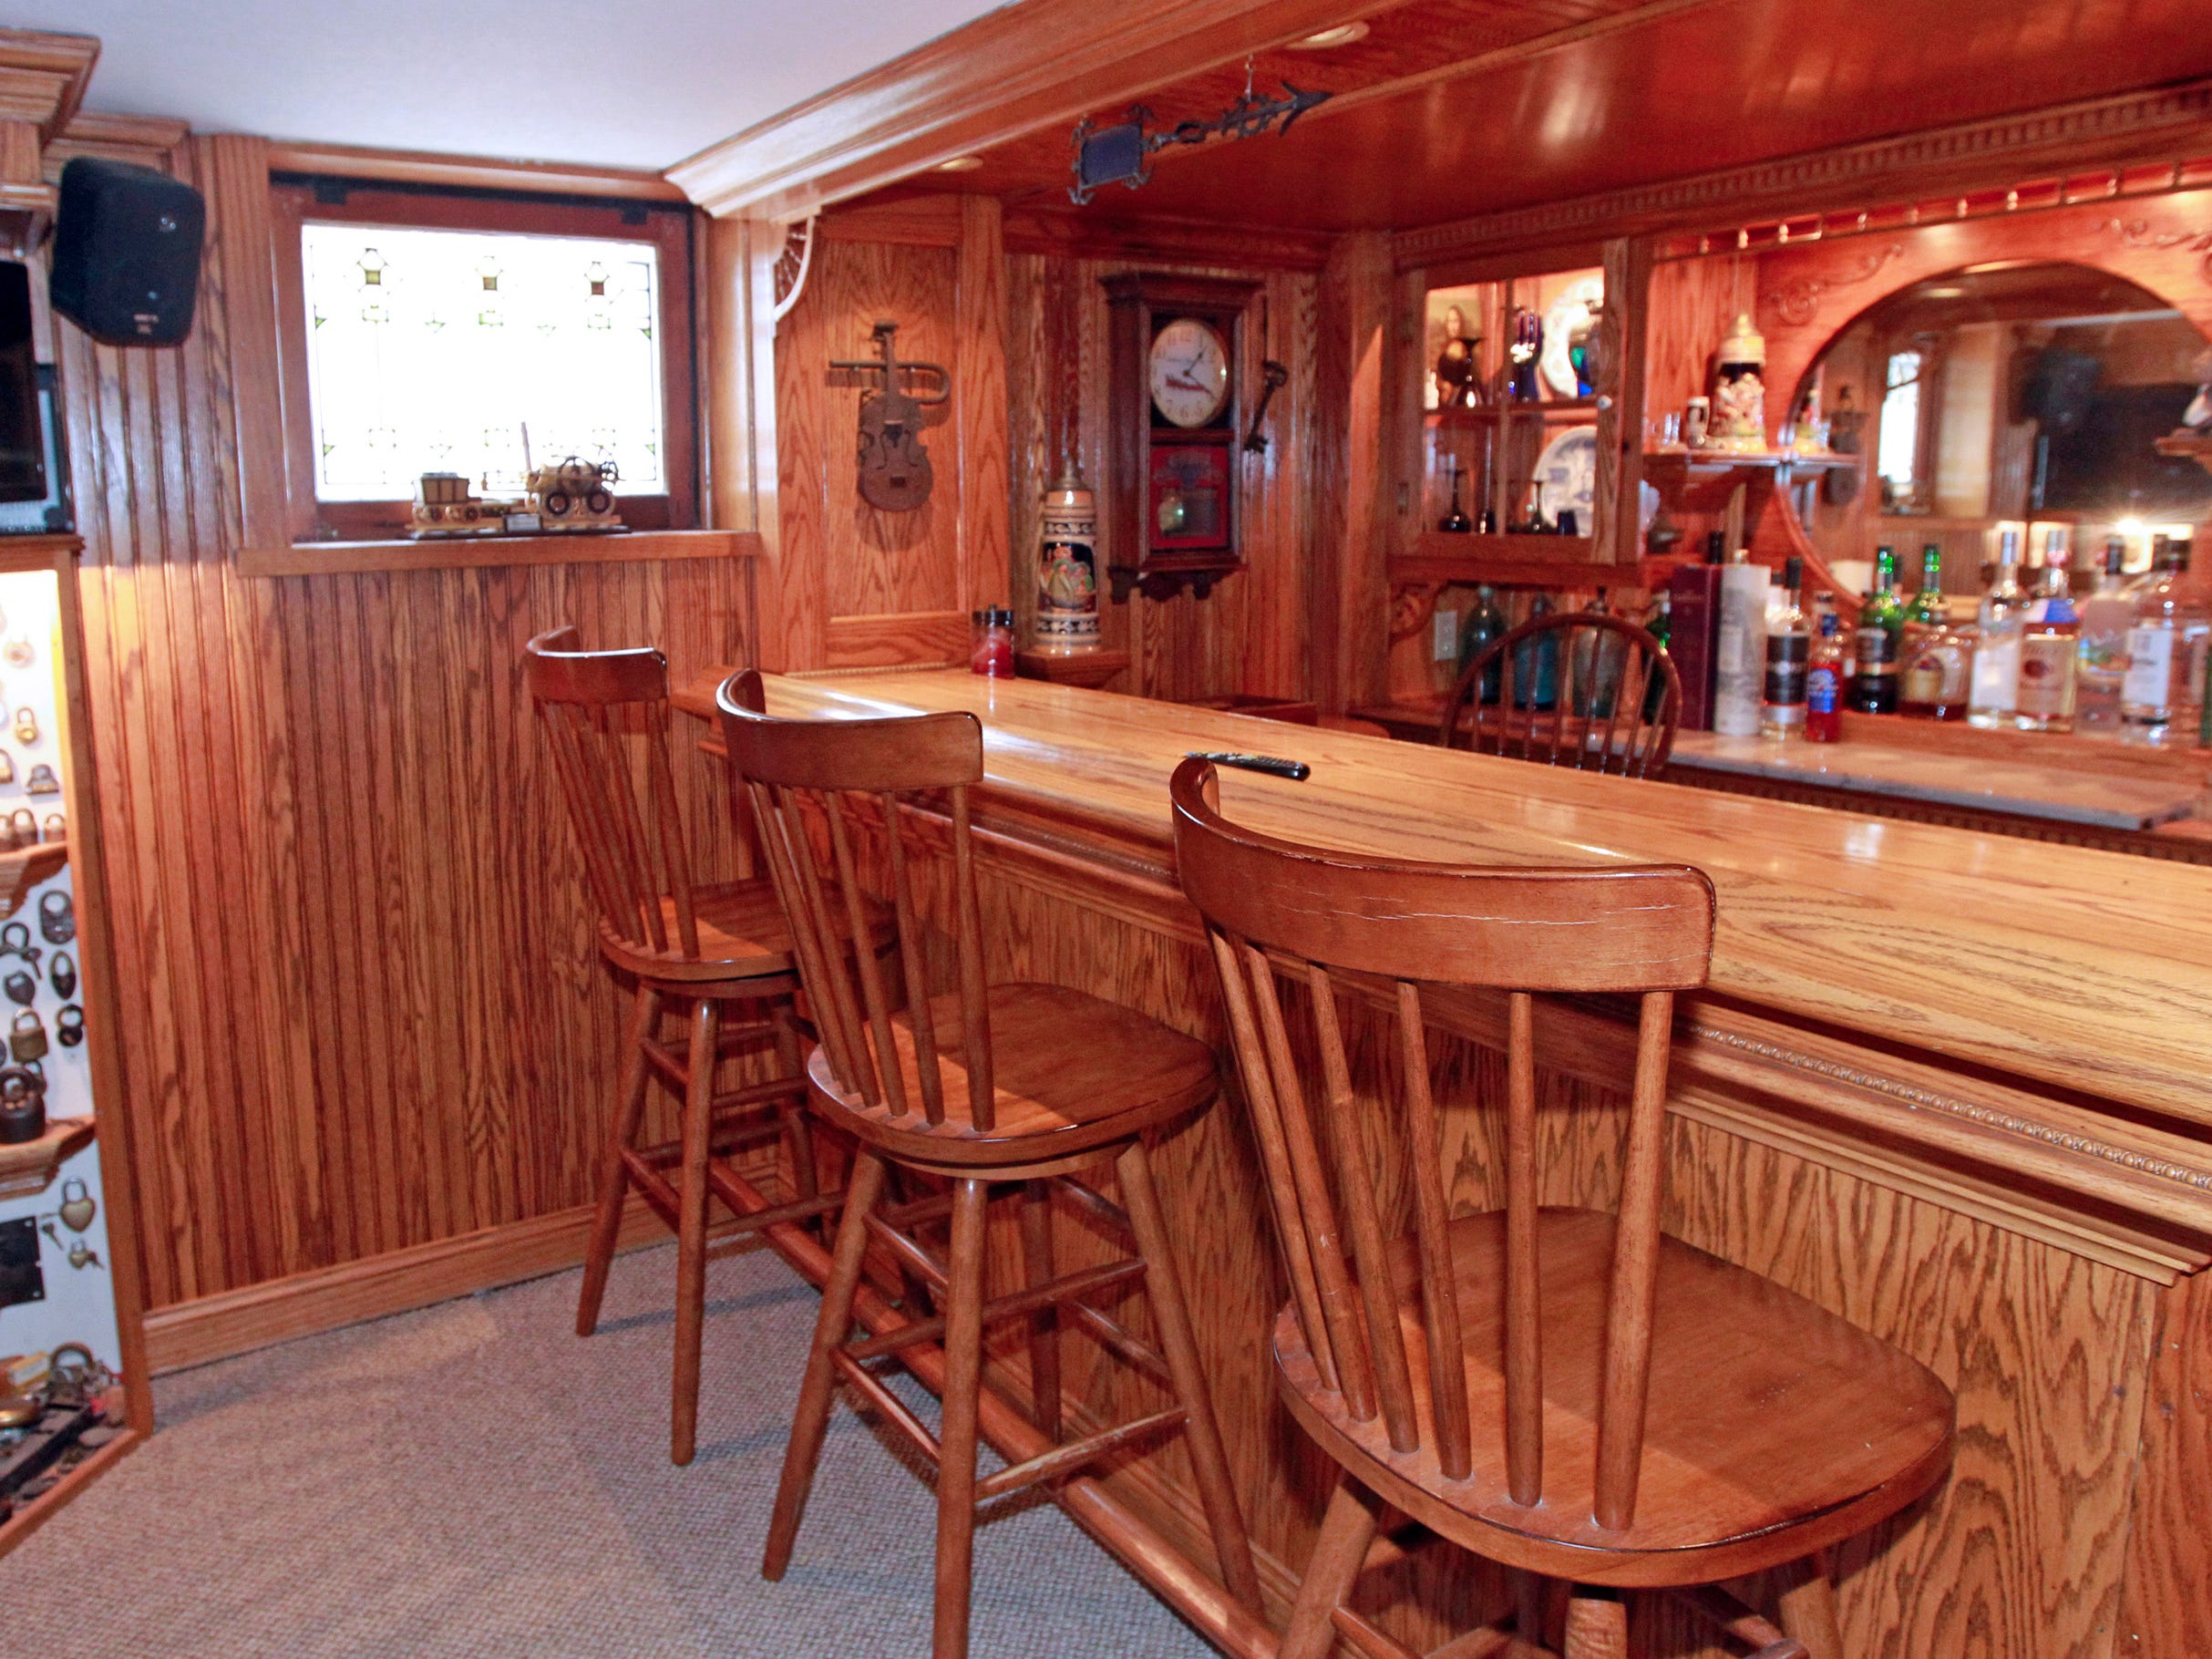 Scott Stephan built this bar in his man cave. It's become a popular place for friends and family to gather.